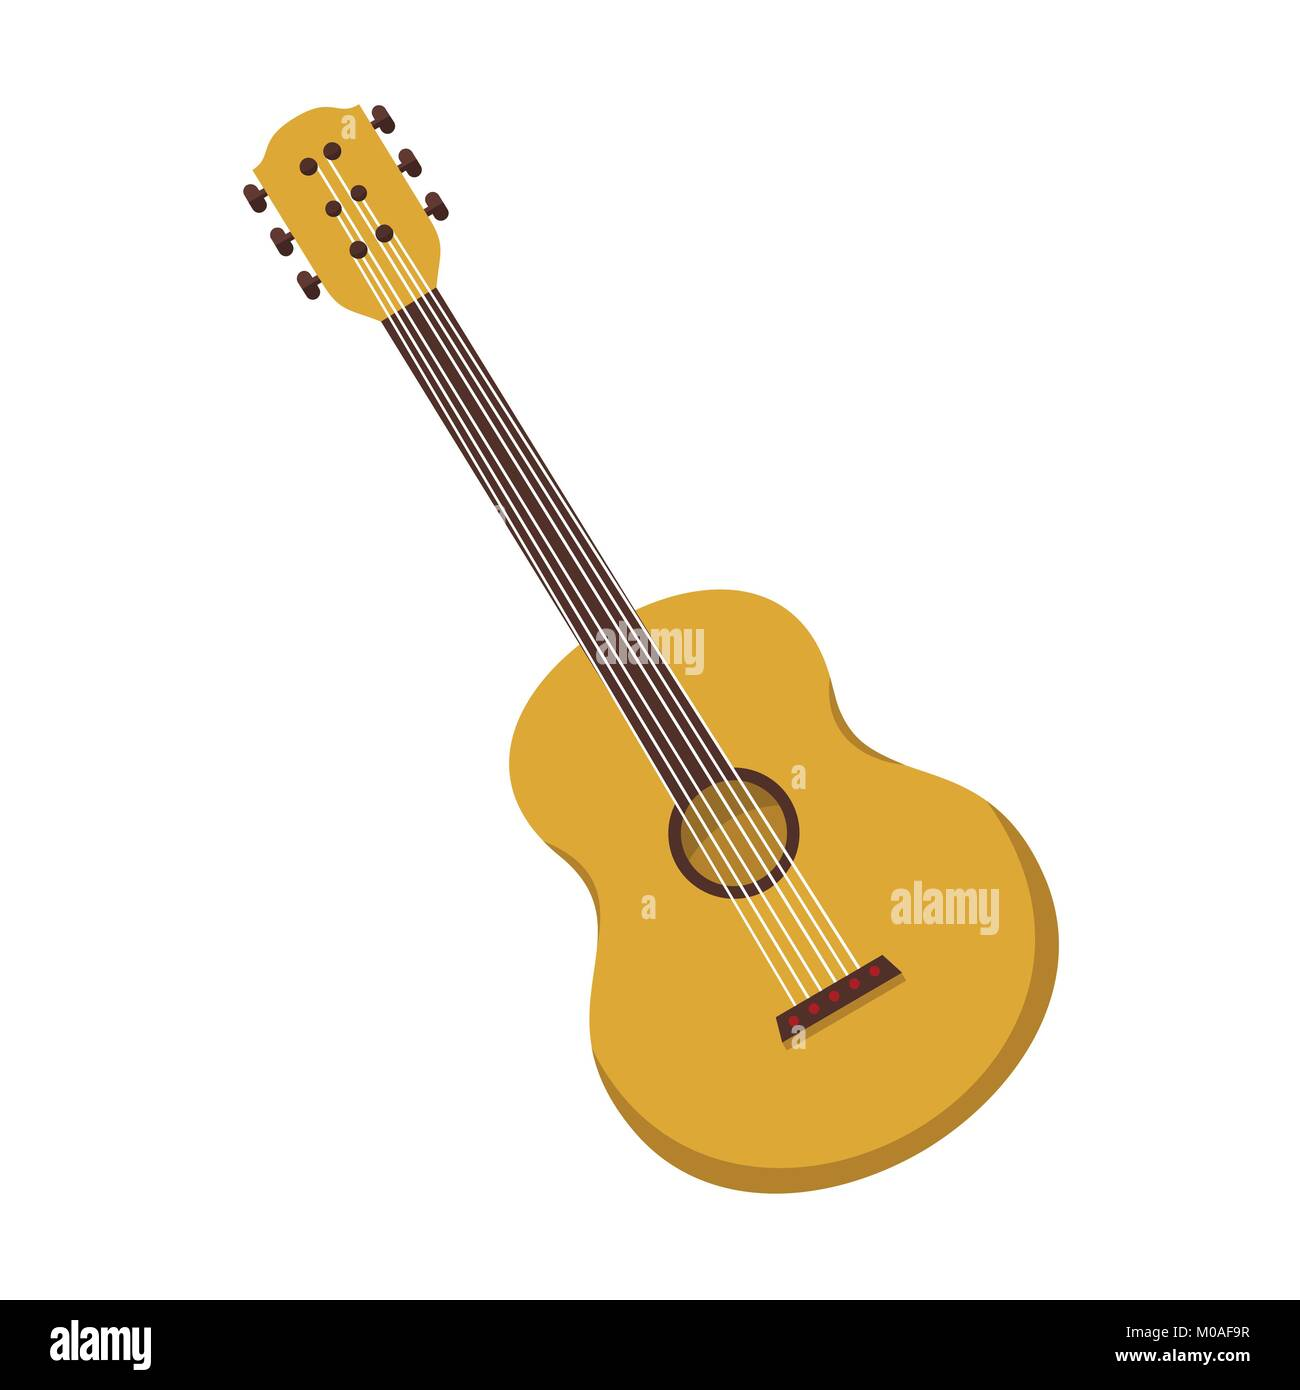 Simple Acoustic Guitar Vector Illustration Graphic Design Stock